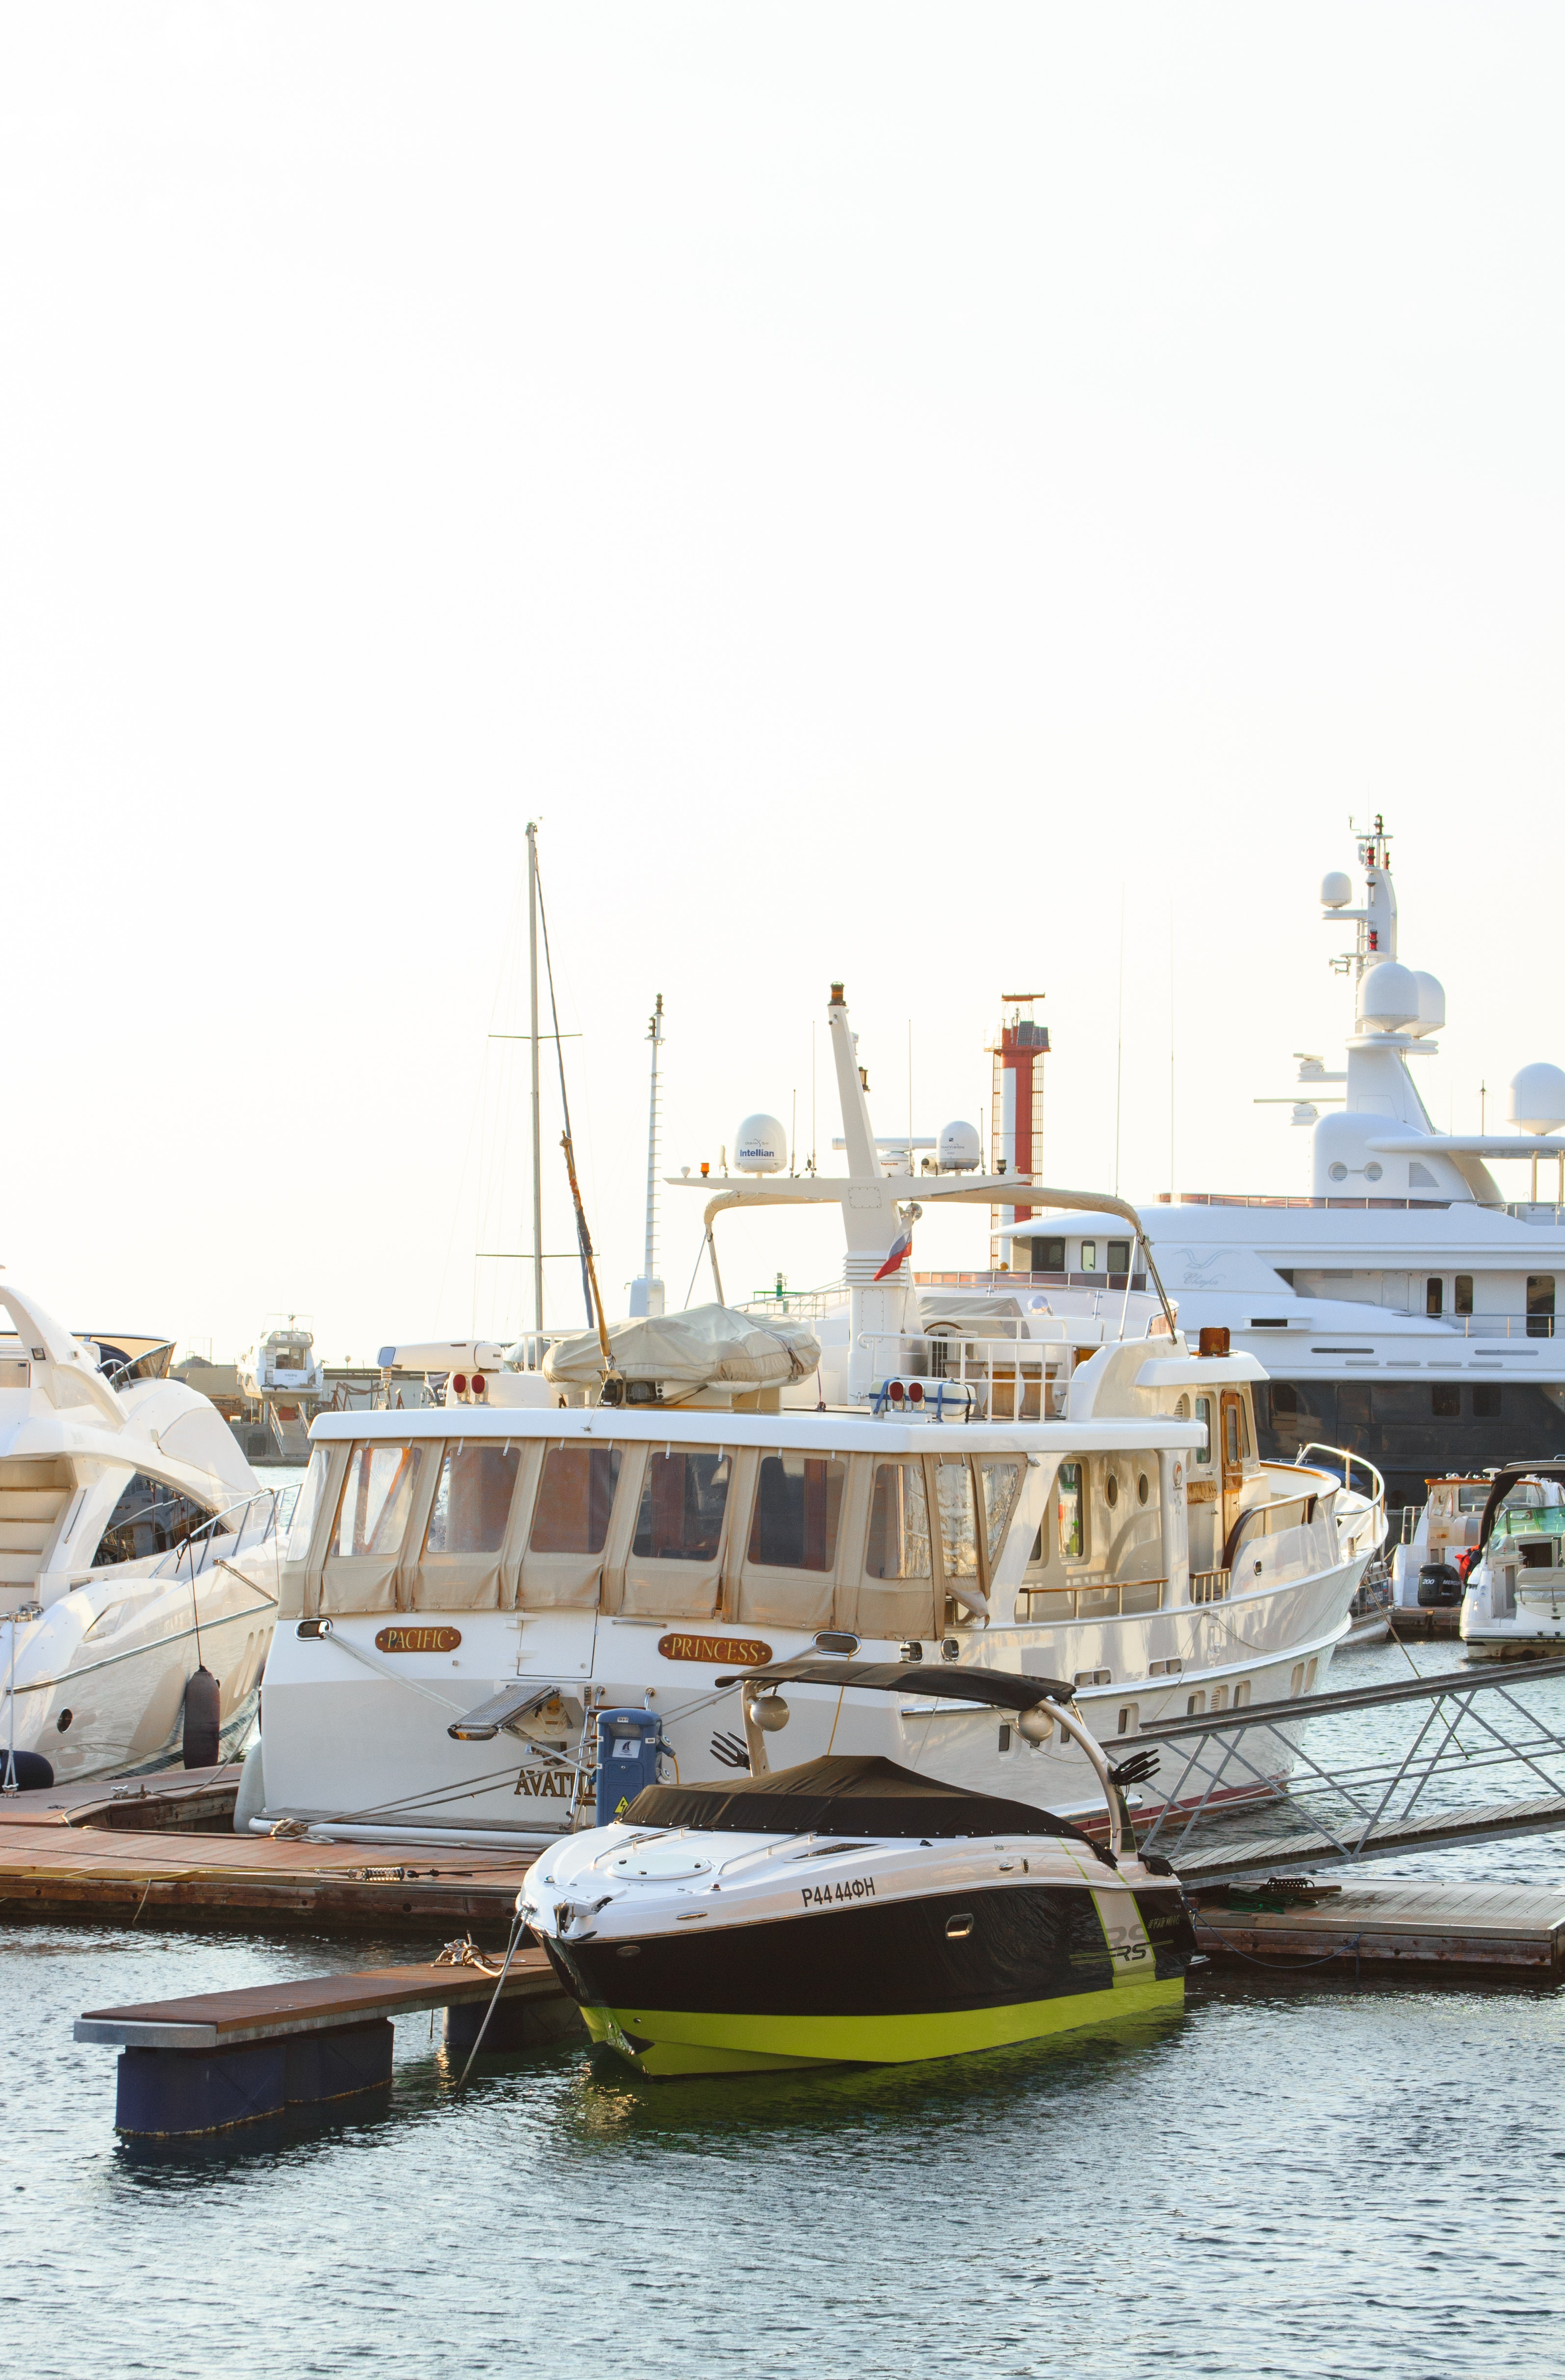 White Yacht Parked on Wooden Dock, Beach, Pier, Watercrafts, Water, HQ Photo